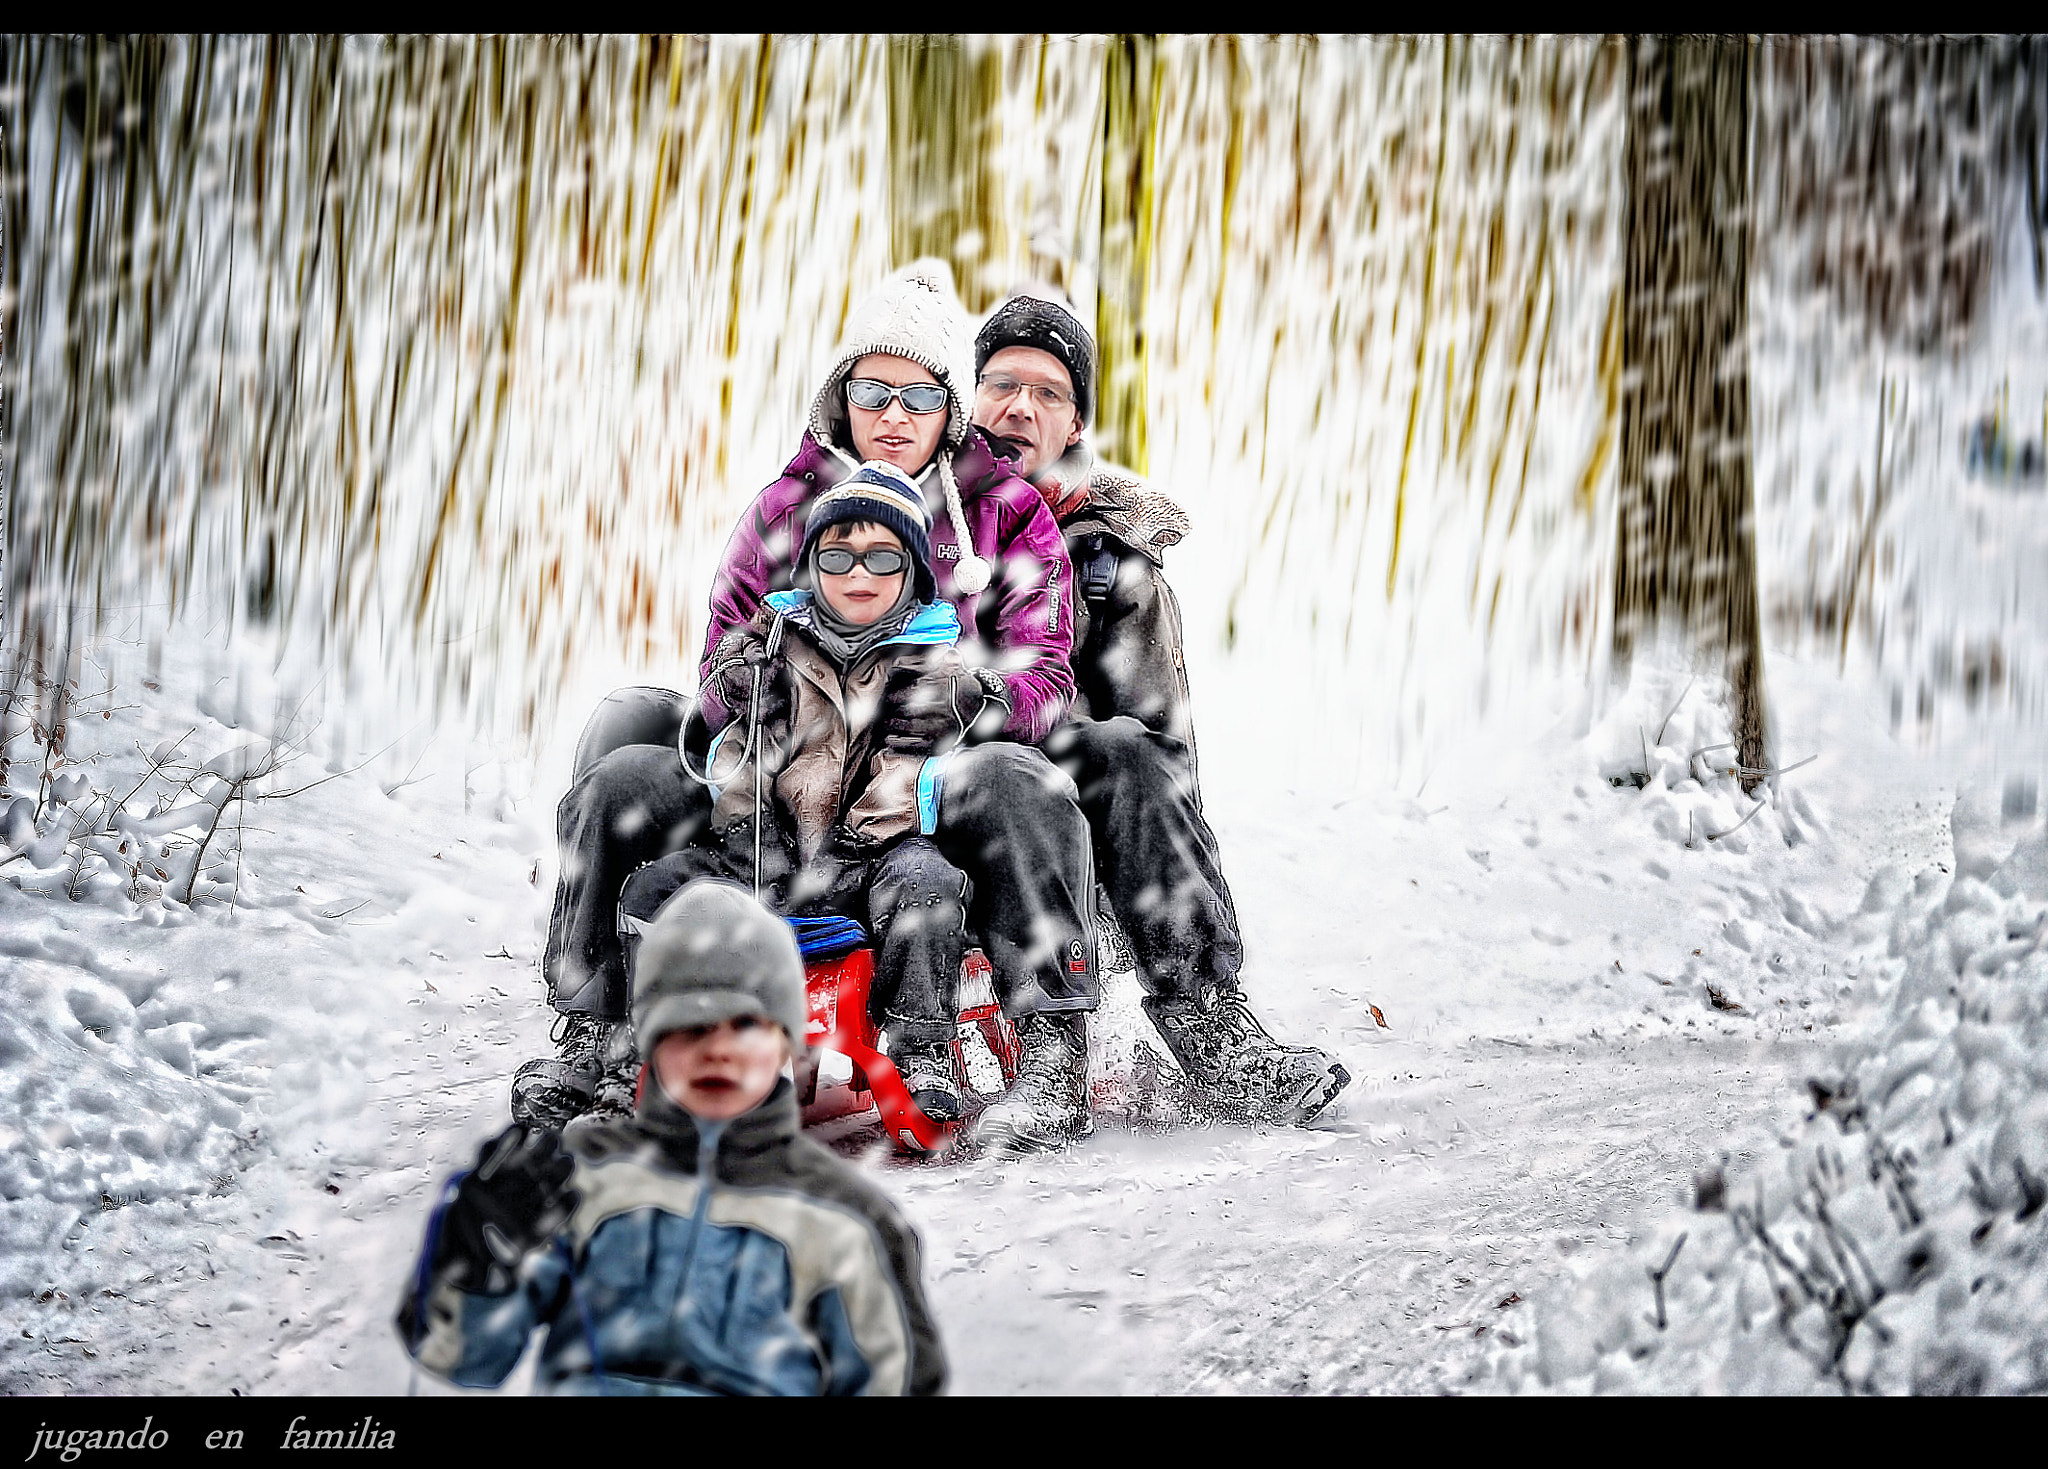 Photograph en familia by Mayte Weber on 500px